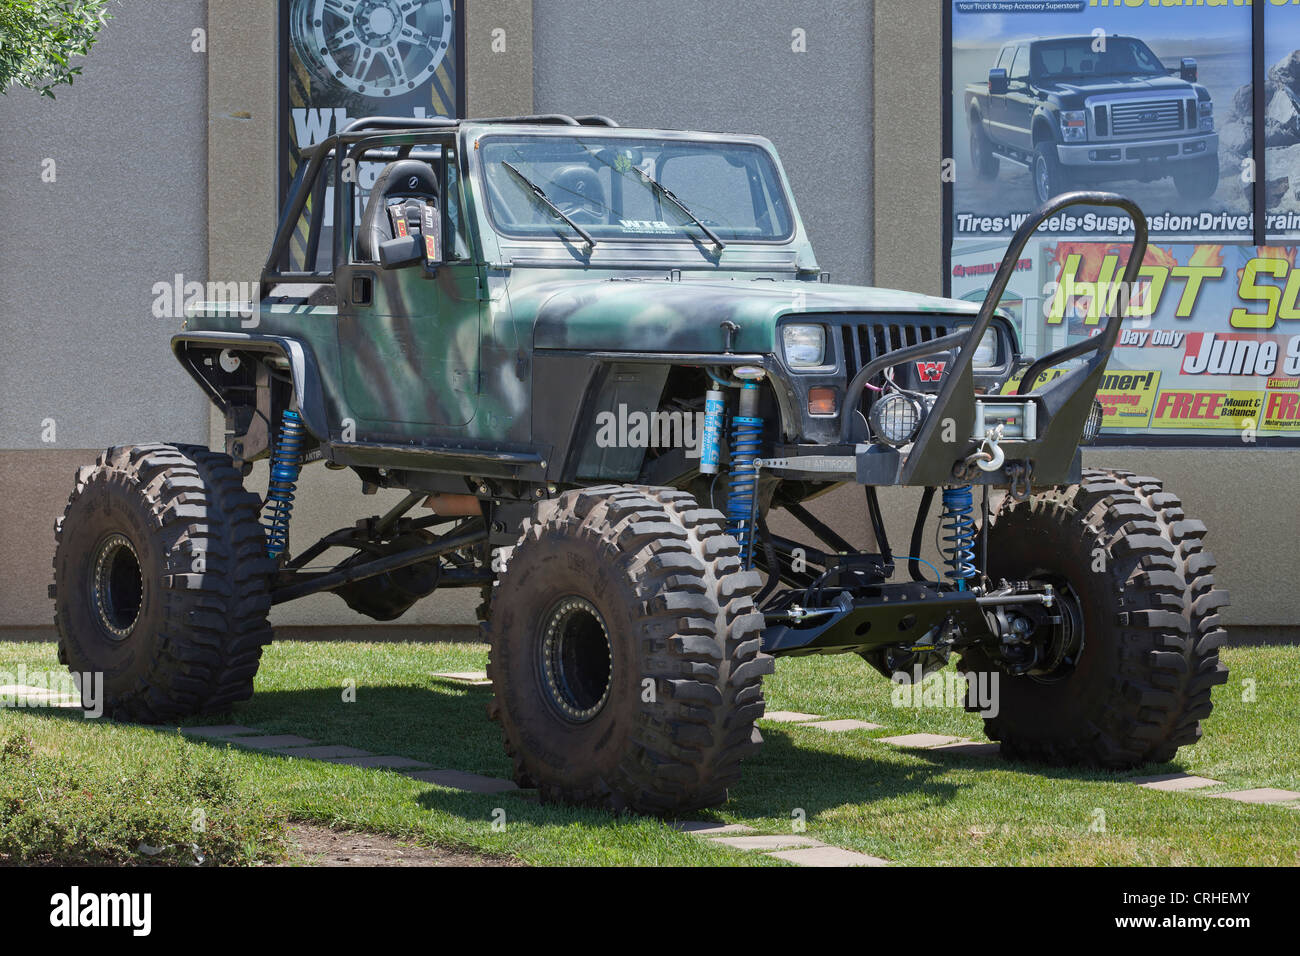 Off-road customized jeep - Stock Image